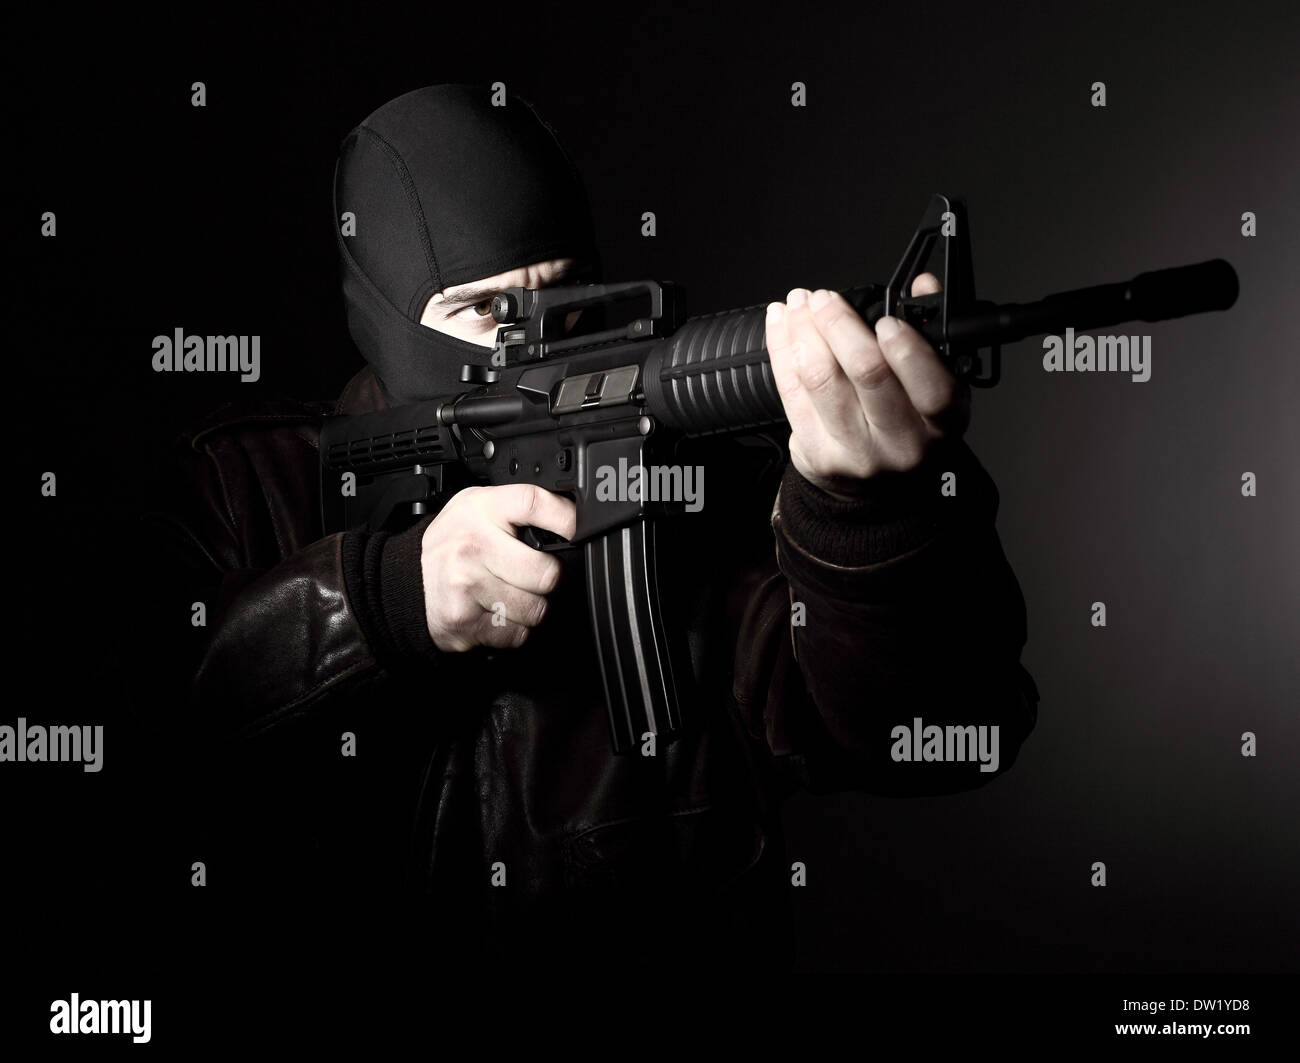 terrorist with rifle - Stock Image